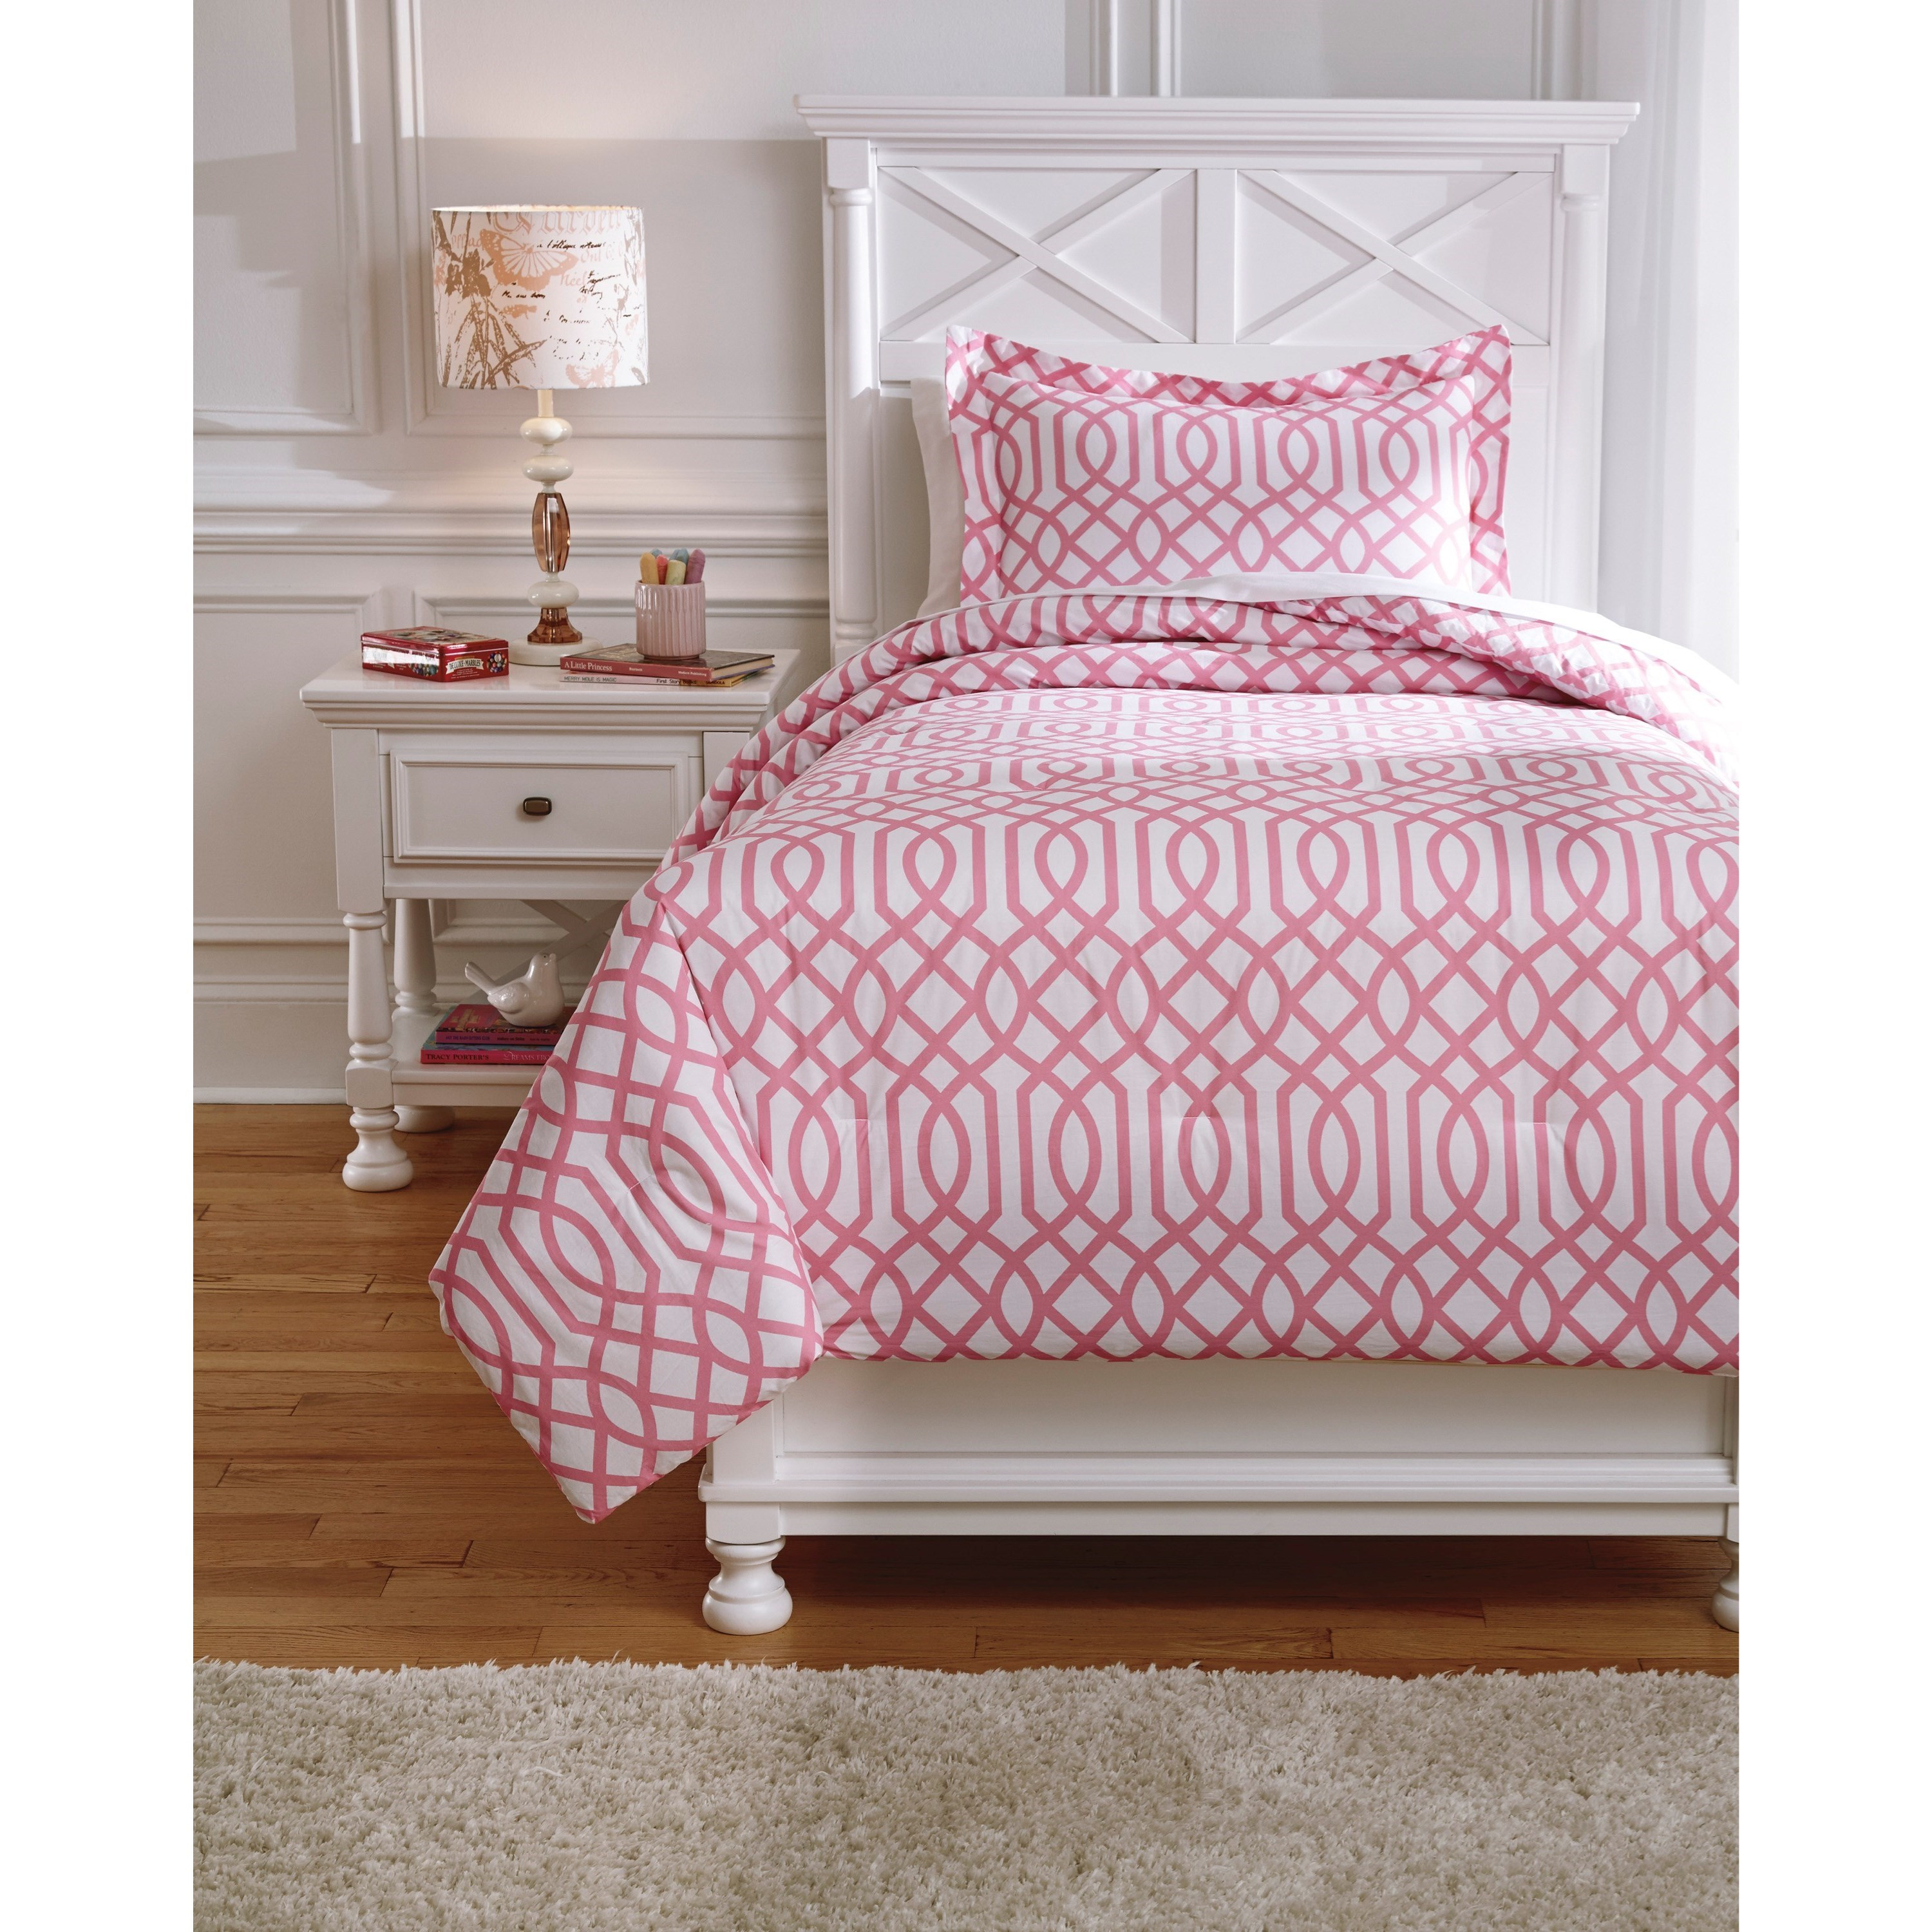 Bedding Sets Twin Loomis Pink Comforter Set by Signature Design by Ashley at Lapeer Furniture & Mattress Center